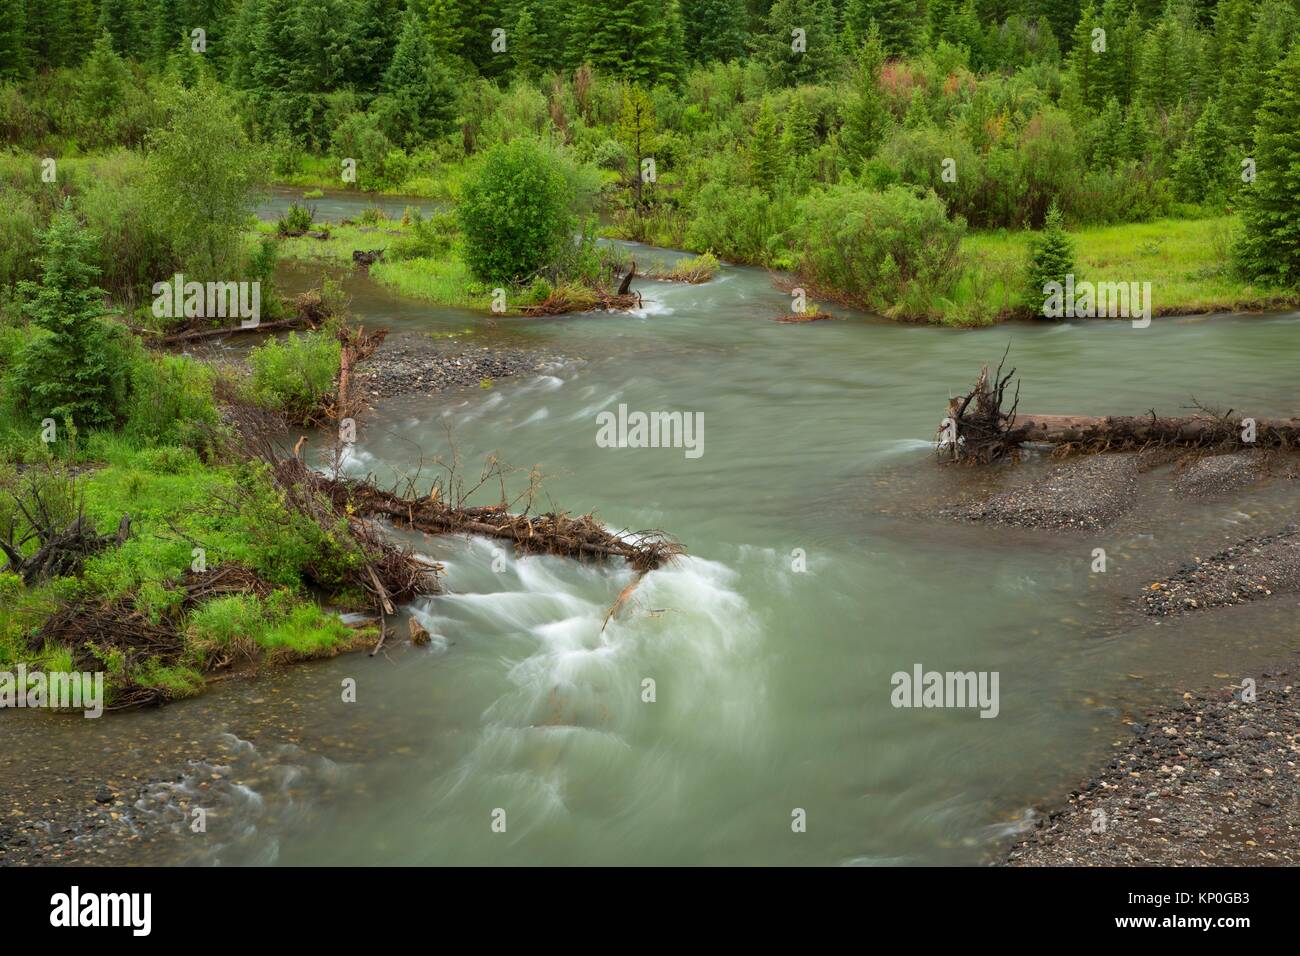 Clarks Fork fo the Yellowstone, Shoshone National Forest, Beartooth Highway Scenic Byway, Wyoming. - Stock Image